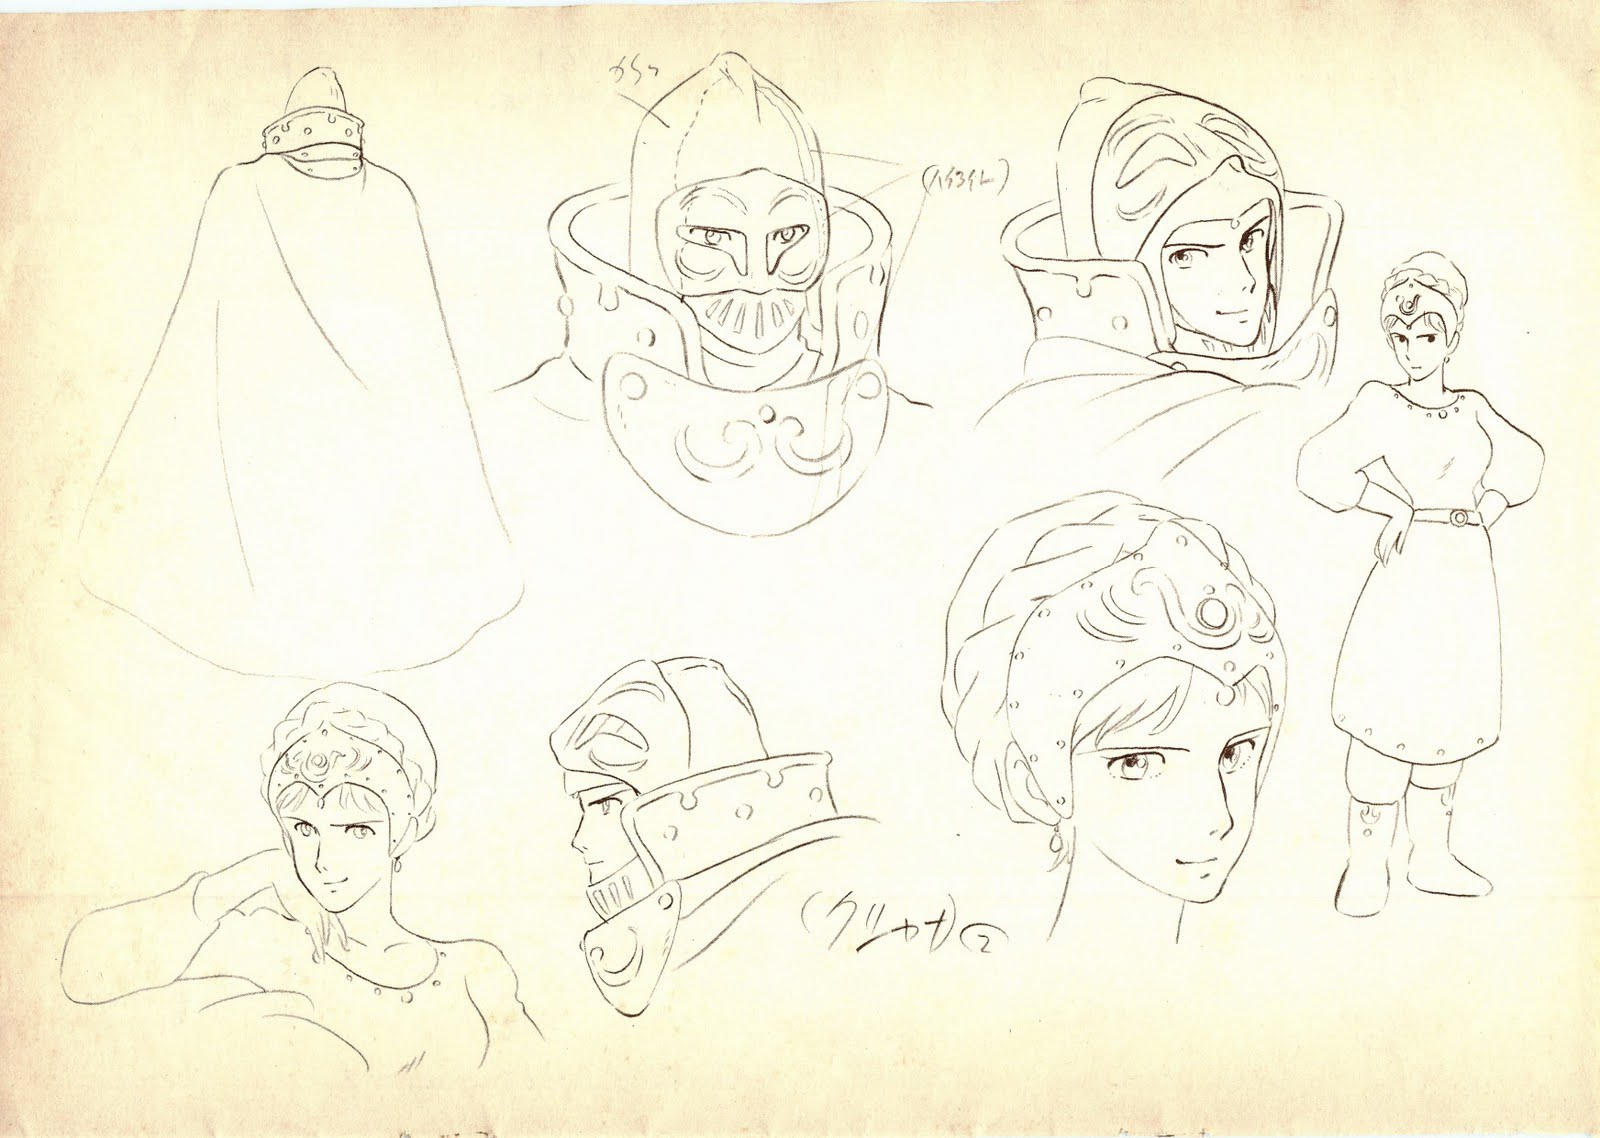 nausicaa_of_the_valley_of_the_wind_concept_art_character_09.jpg